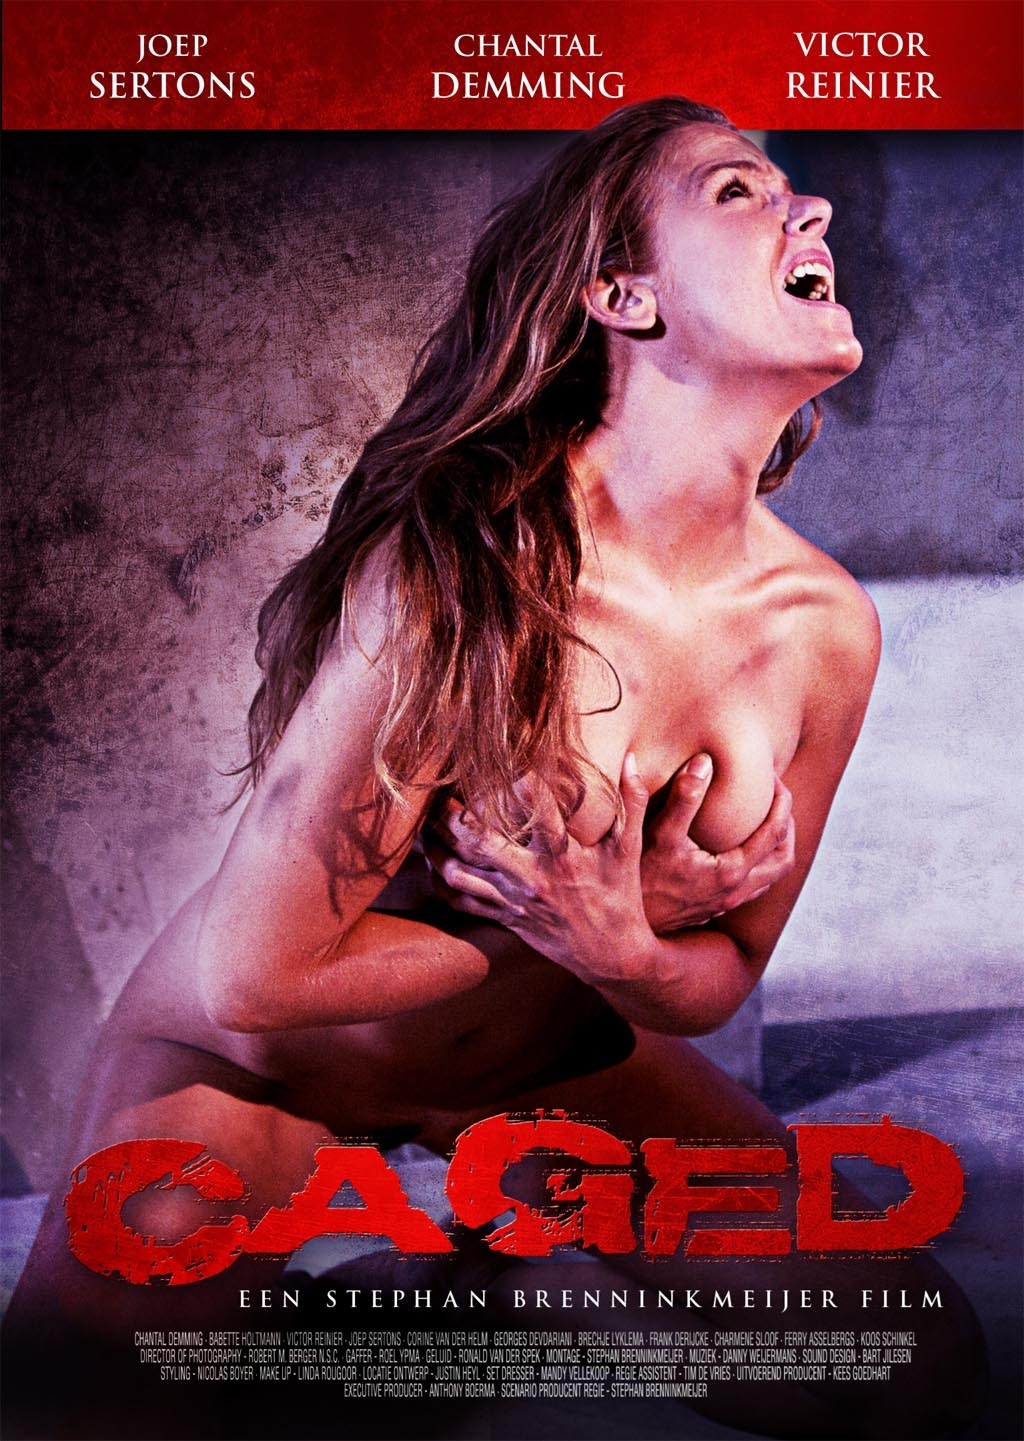 Caged chantal demming 2011 sex scene - 1 part 4